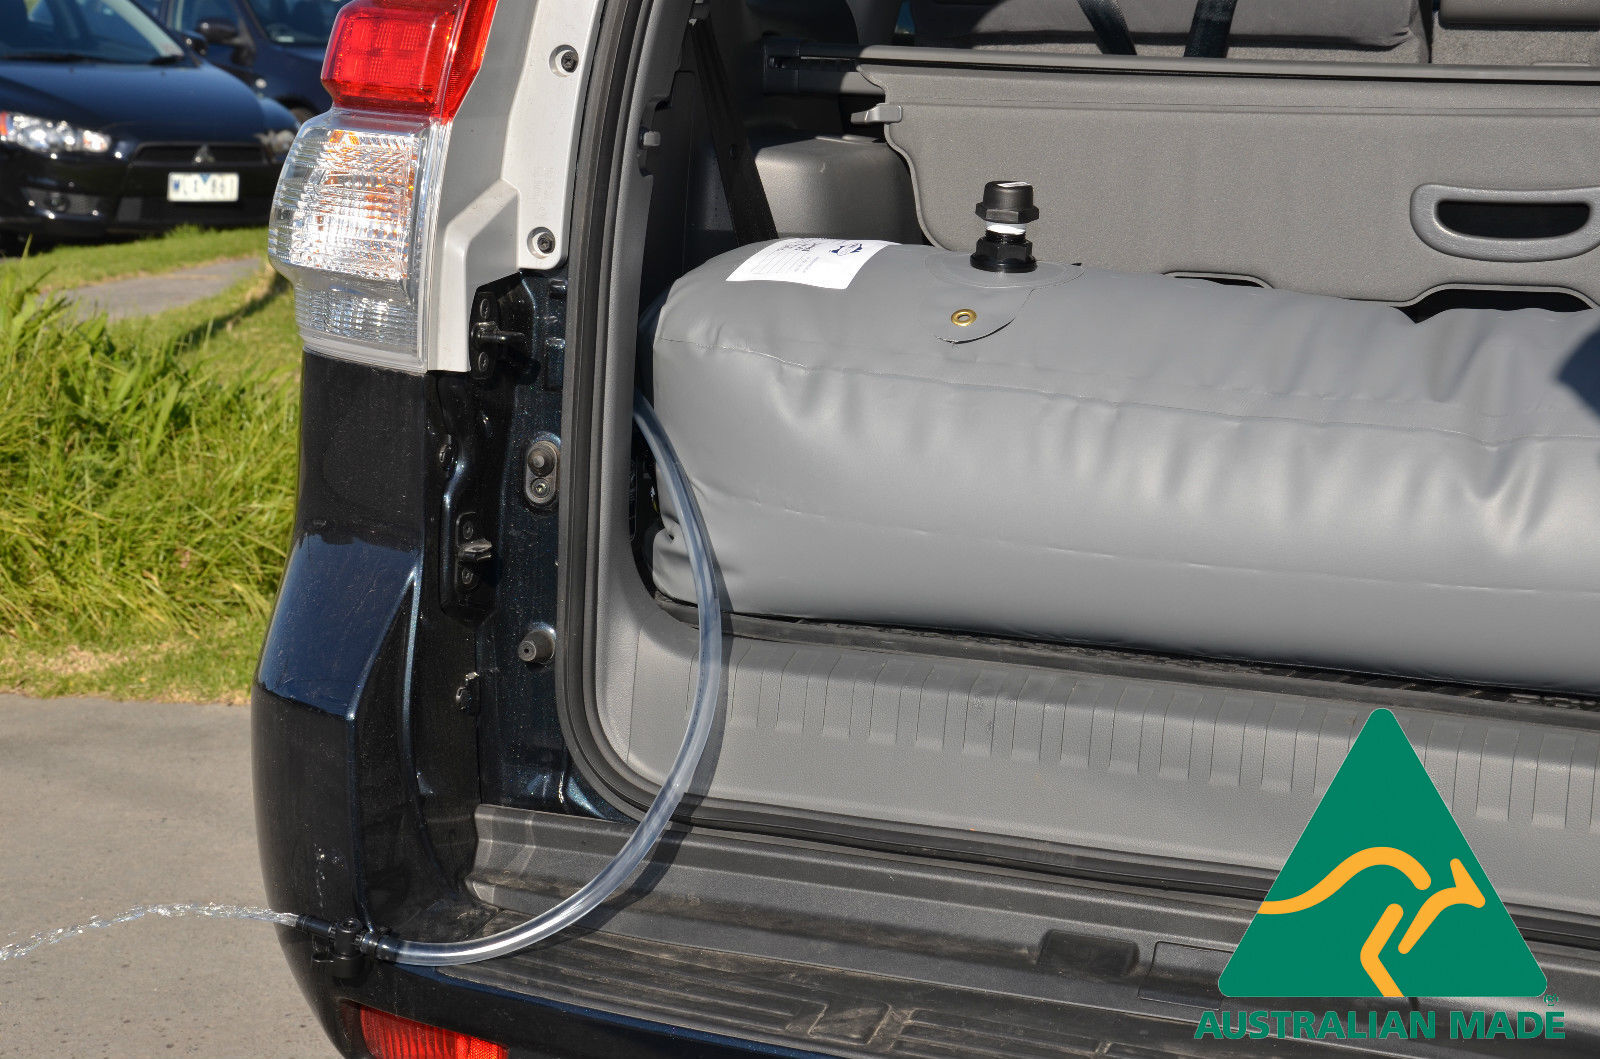 140Ltrs 4x4, 4wd and SUV Accessories  1350mm x 450mm x 250mm Box Type - DW140B  ultra-low prices